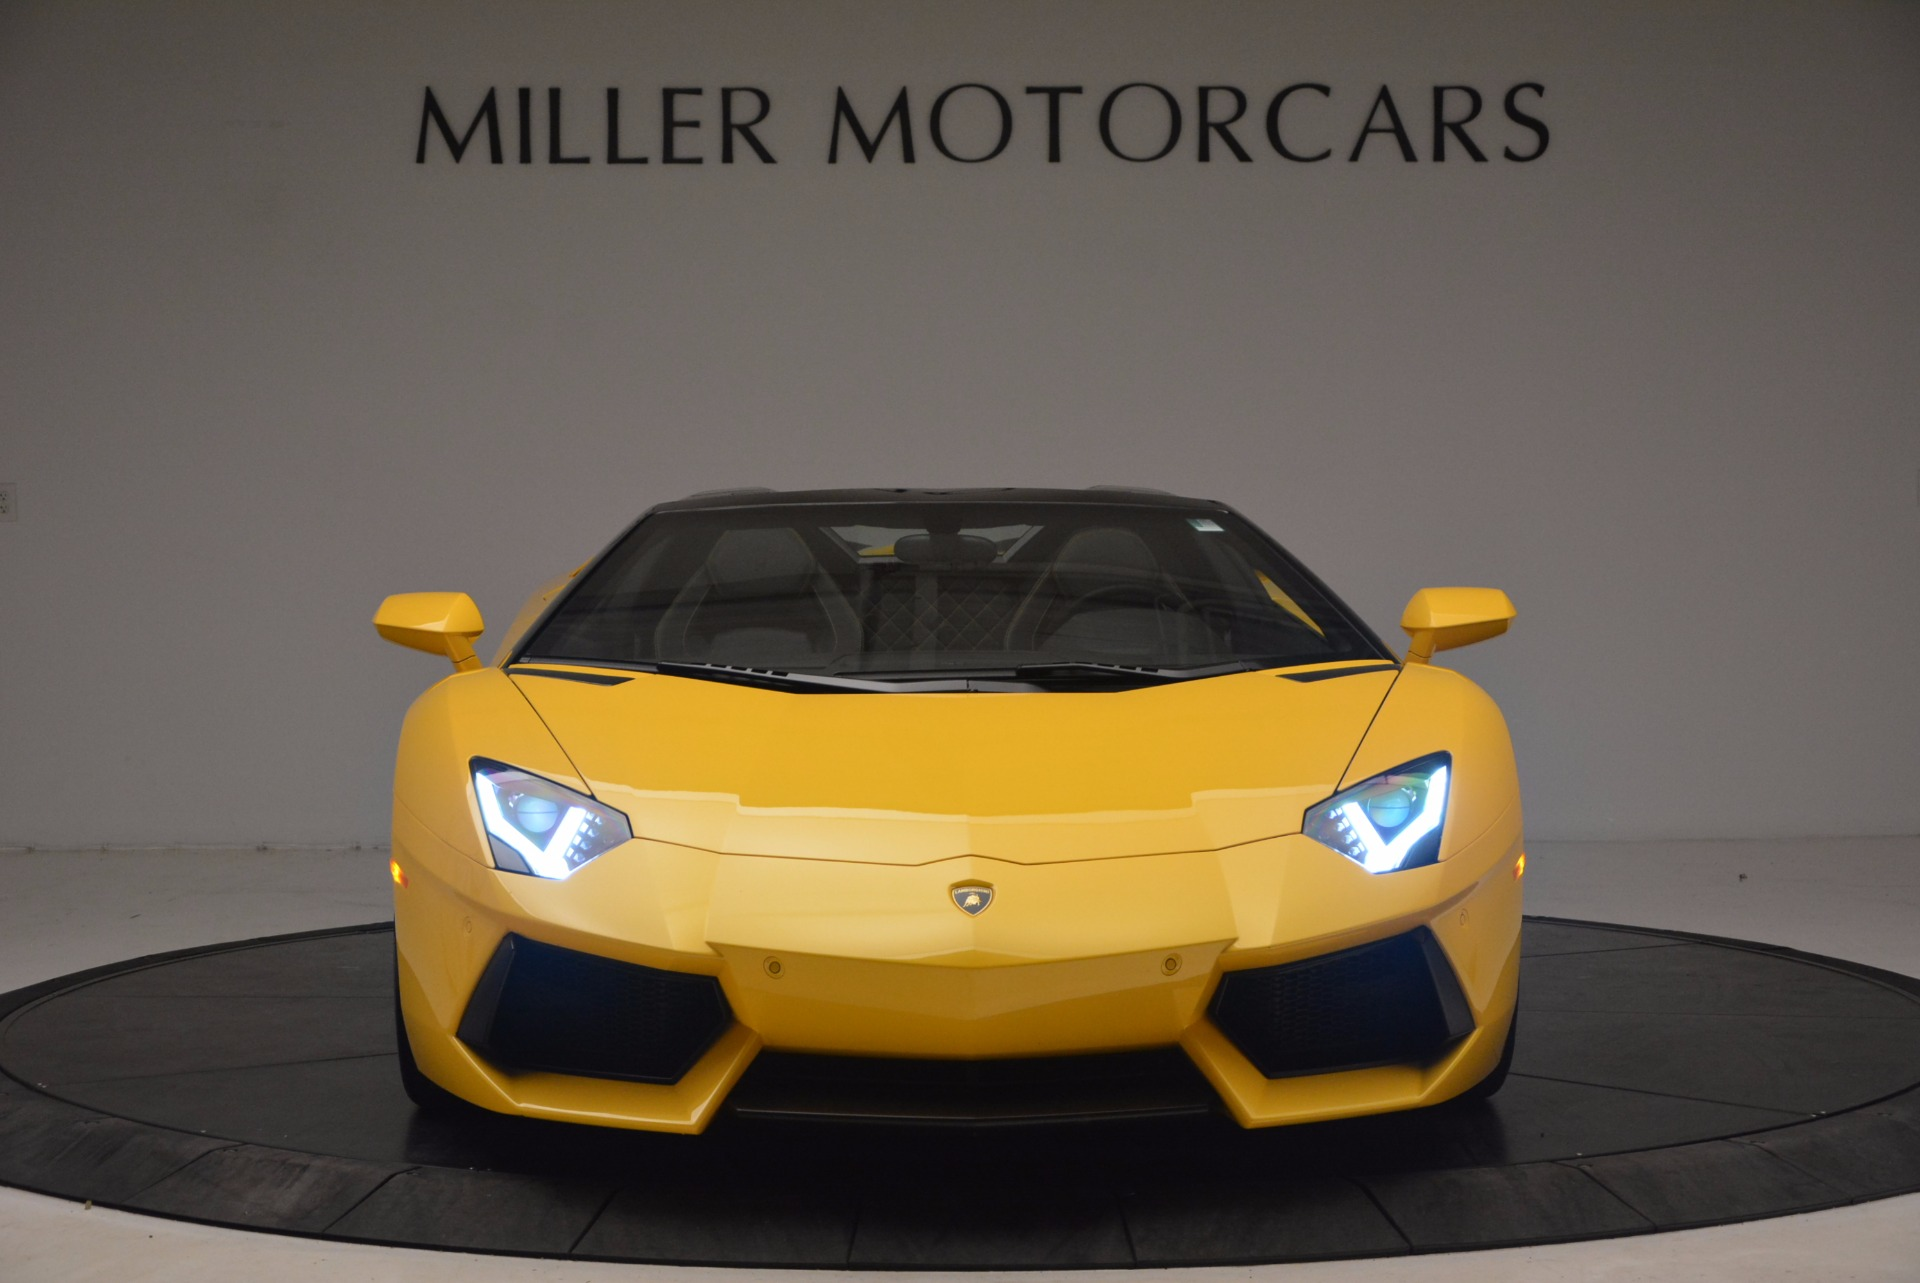 Used 2015 Lamborghini Aventador LP 700-4 Roadster For Sale In Westport, CT 1774_p7